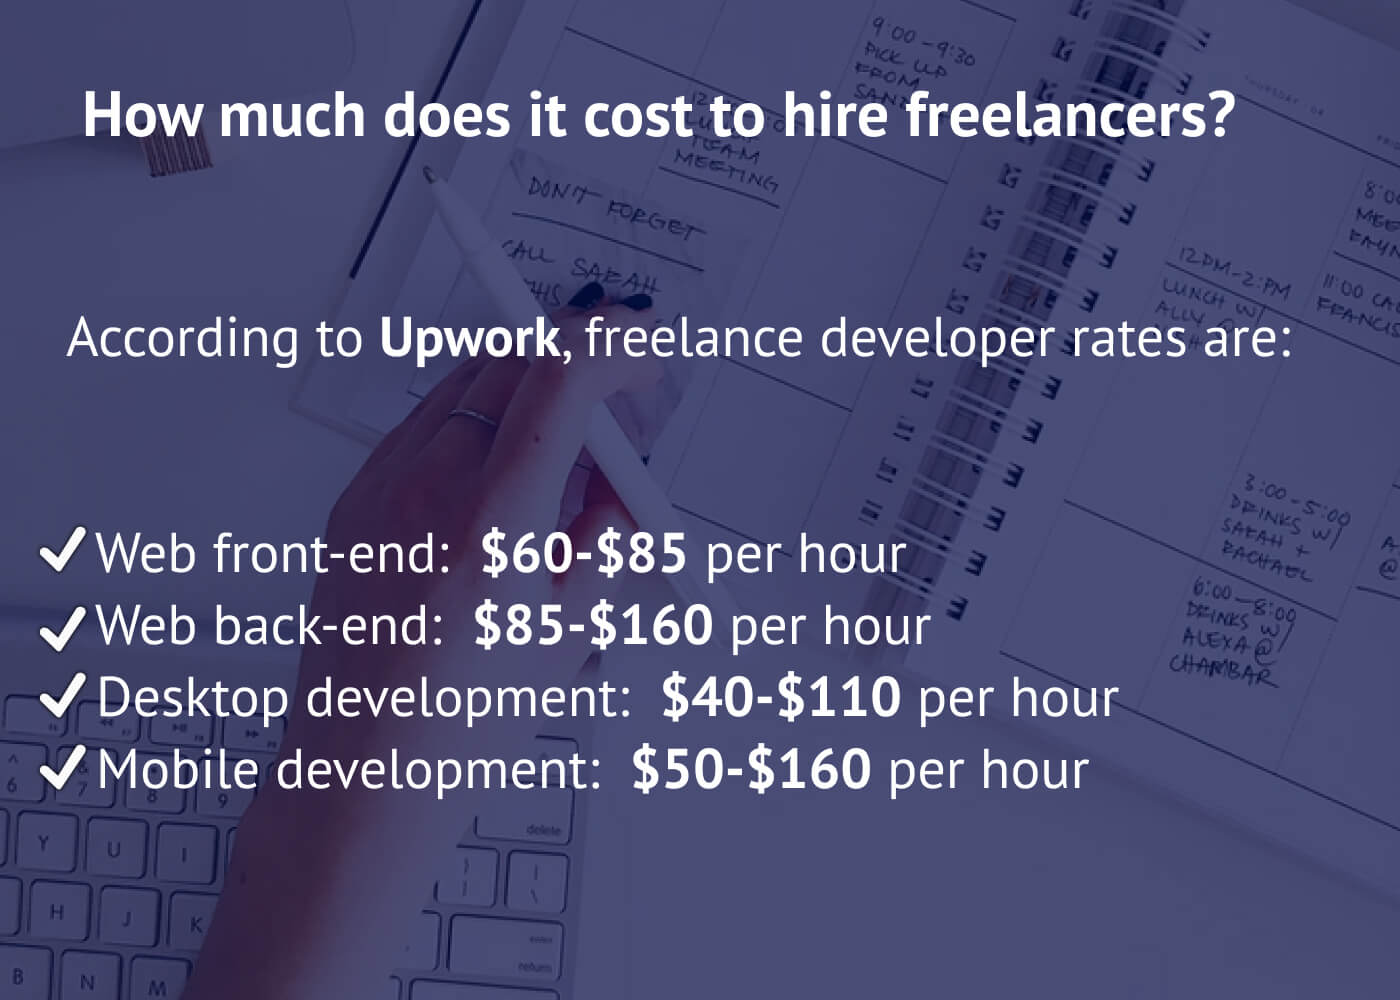 How much does it cost to hire freelancers